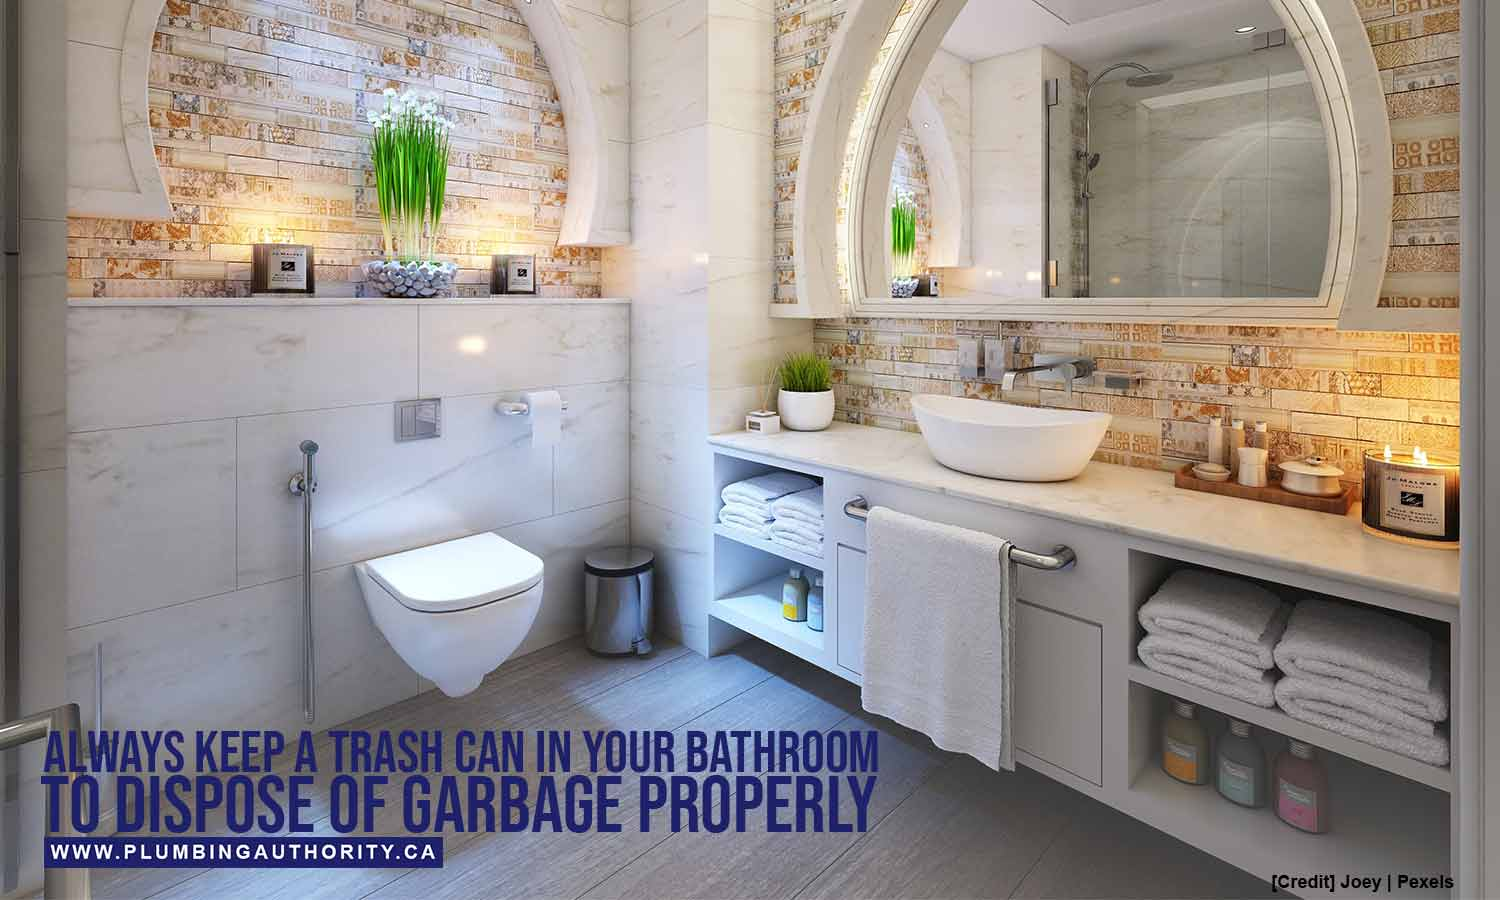 Always keep a trash can in your bathroom